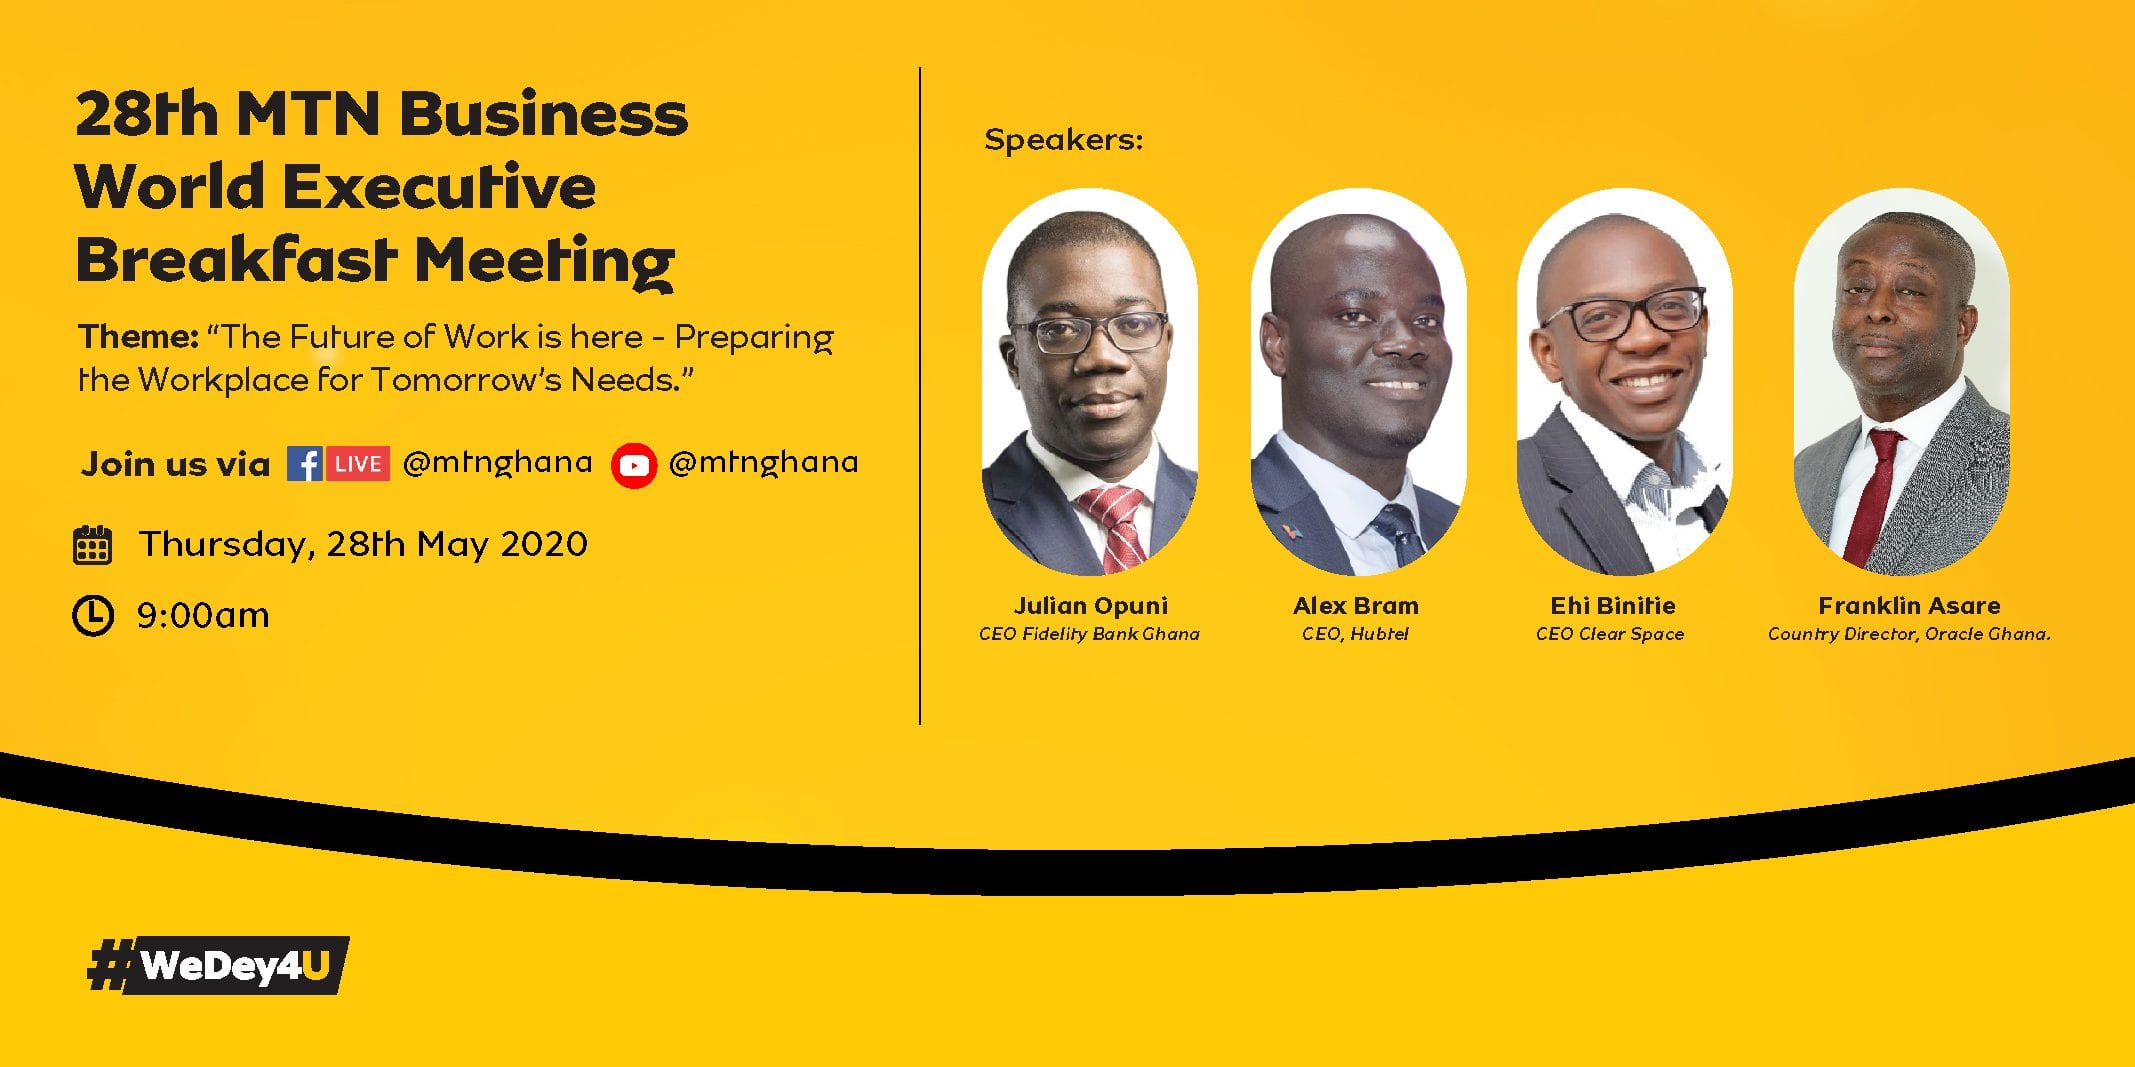 MTN Business World Executive Breakfast Meeting goes exclusively virtual to discuss the future of work